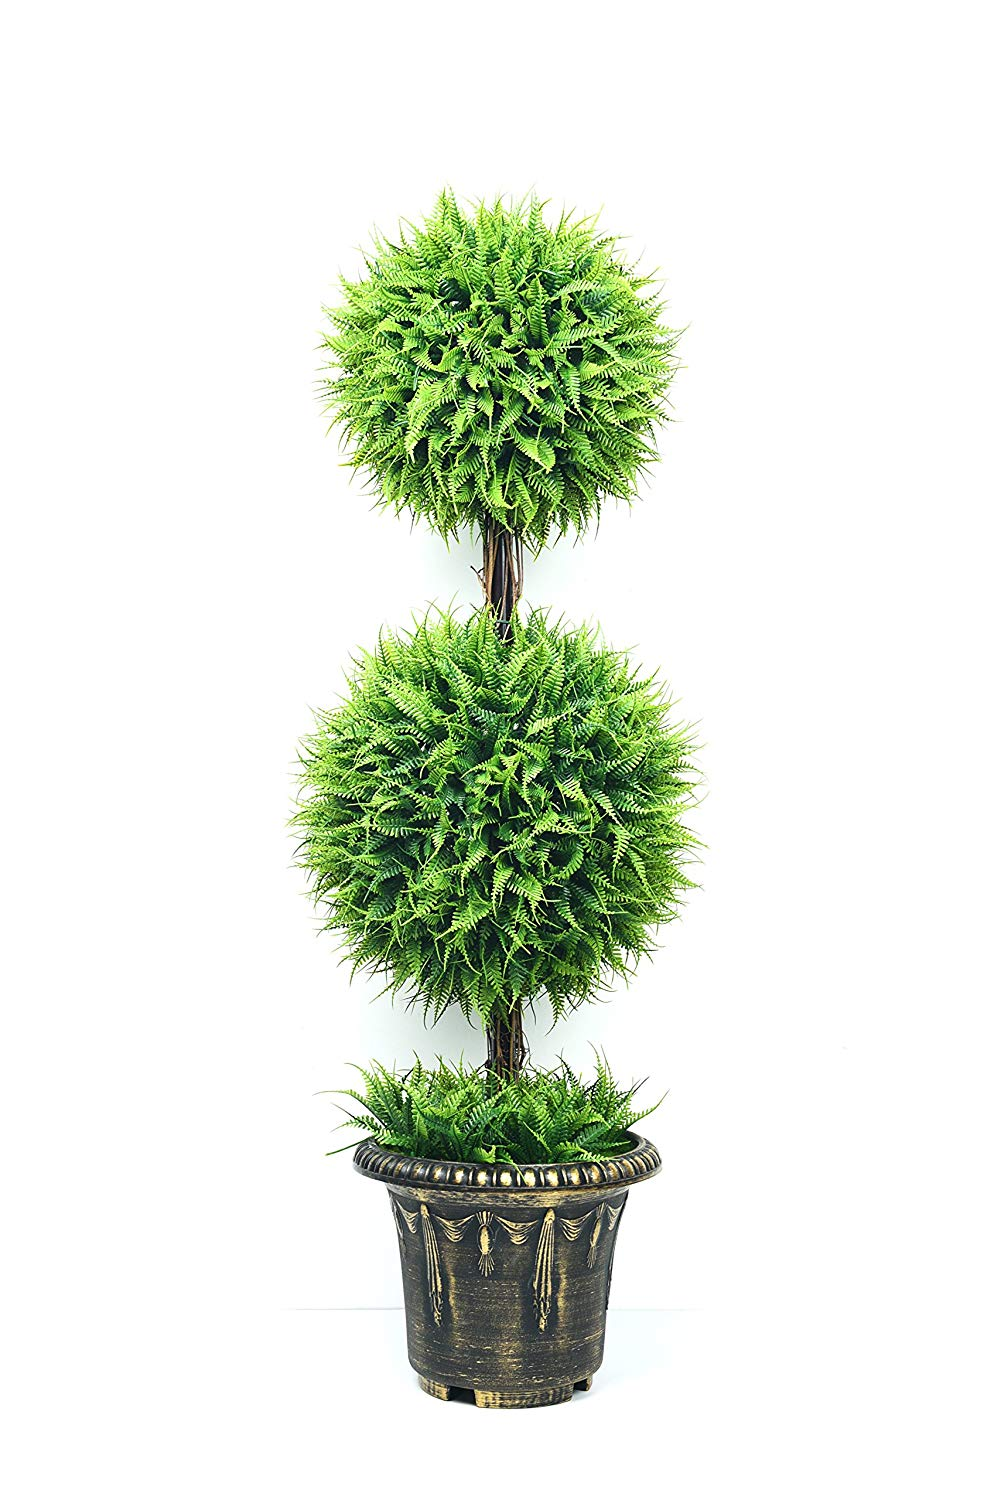 Cheap Topiary Dog, find Topiary Dog deals on line at Alibaba.com